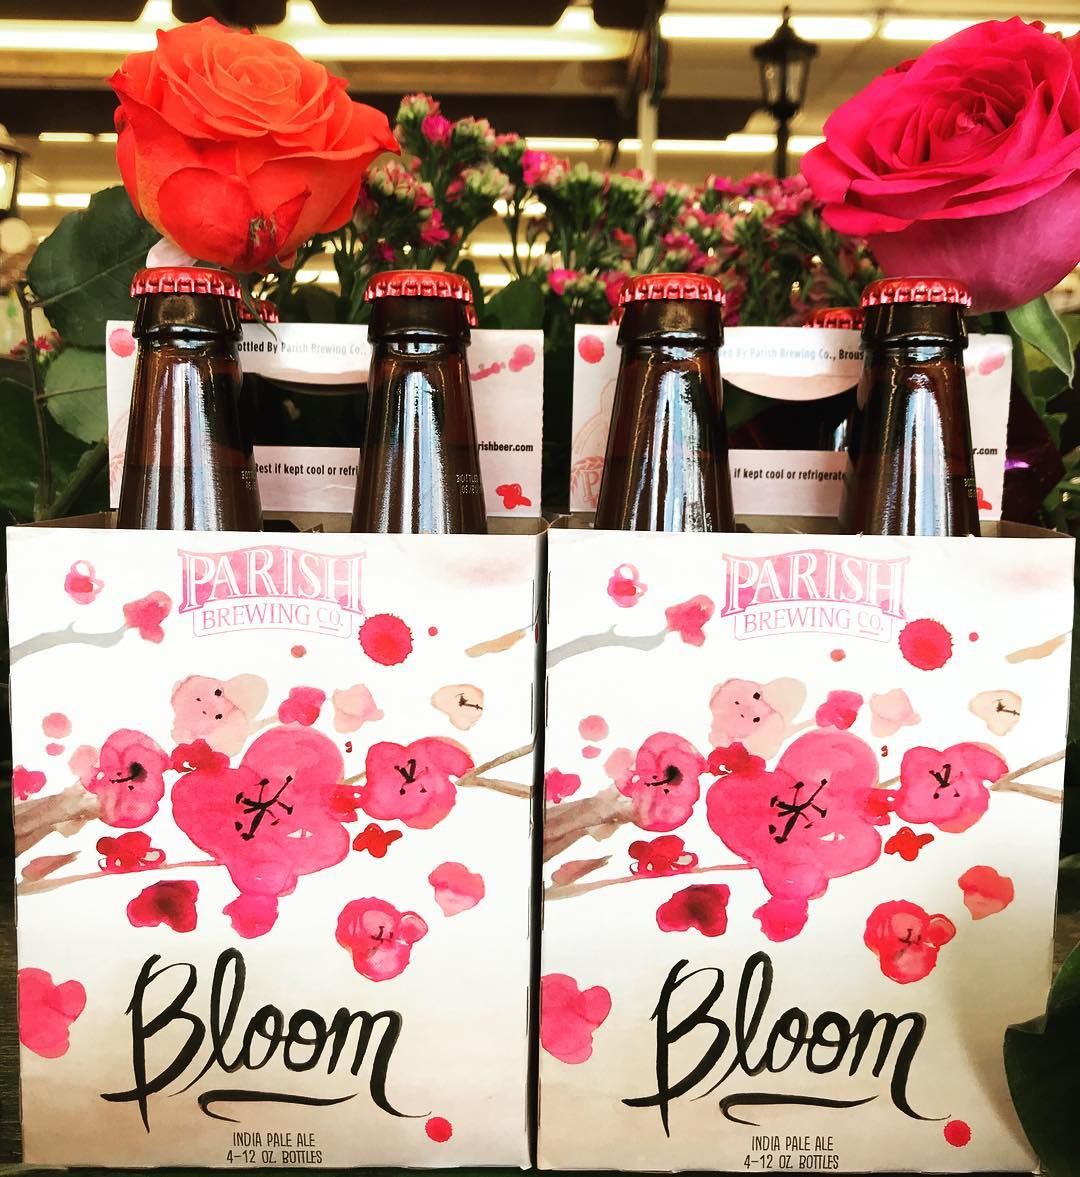 @parishbrewingco #Bloom is available now at our Mid-City location! Perfect for the hottest Louisiana weather….